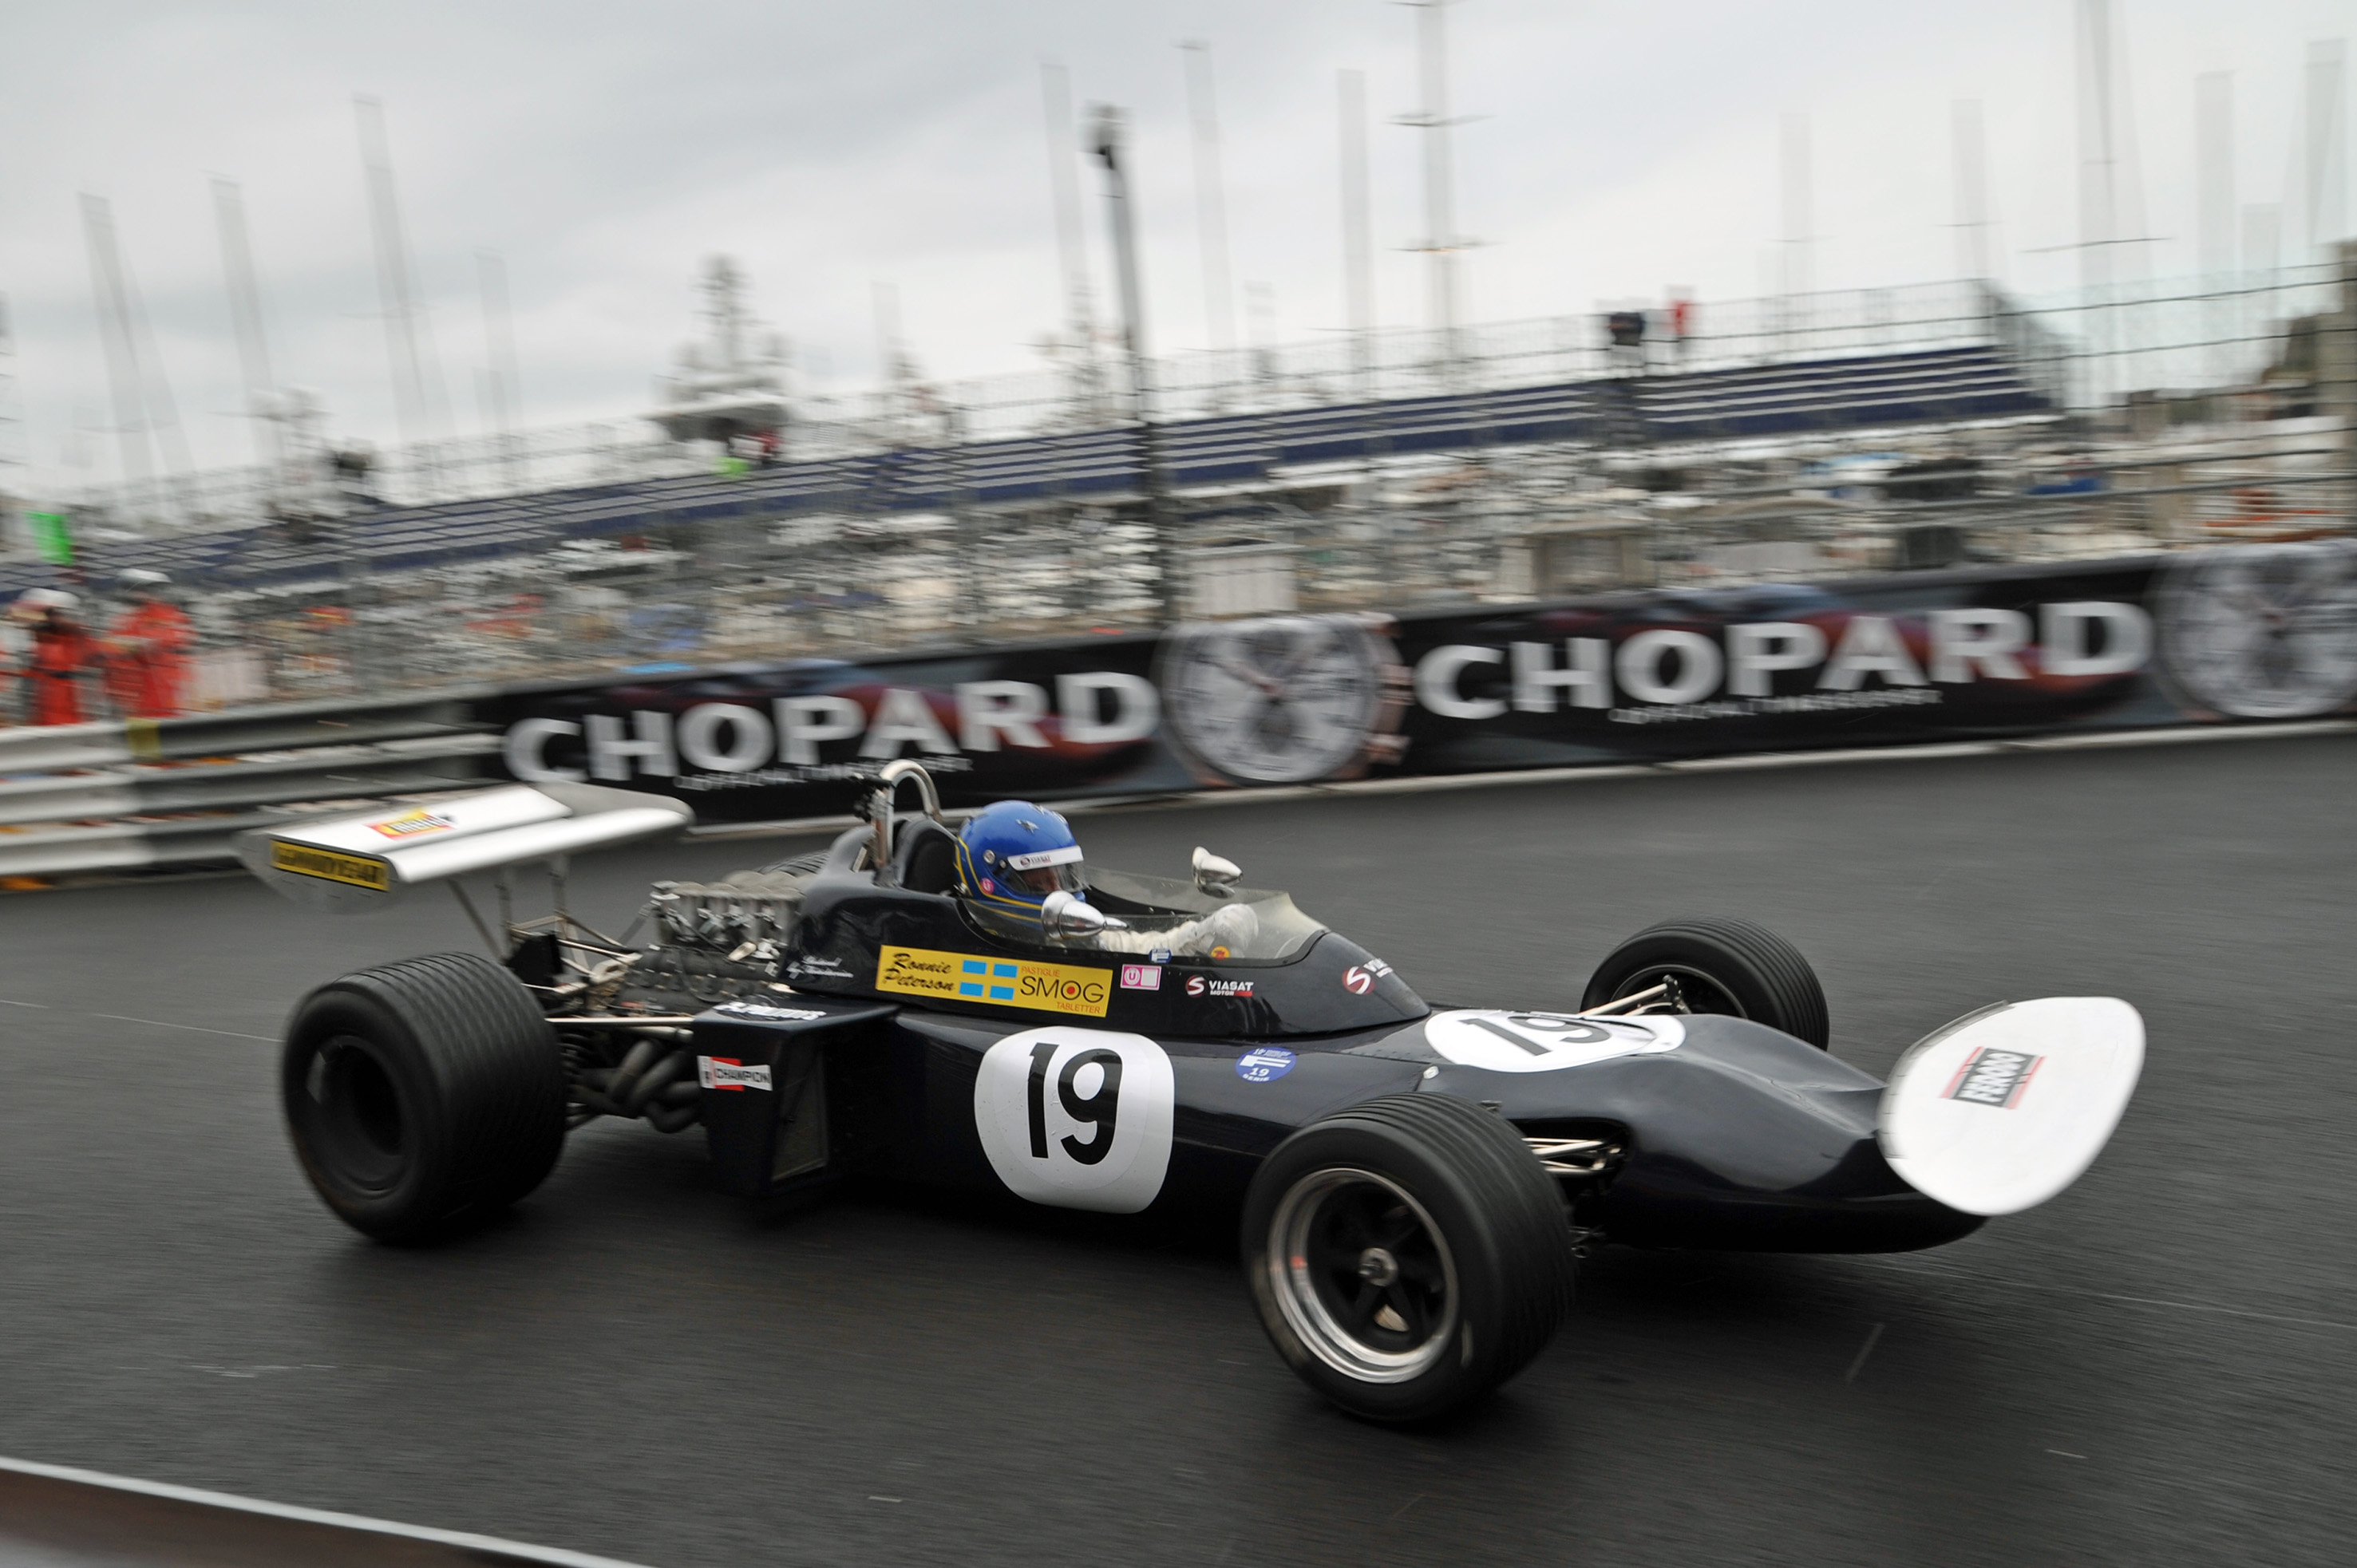 Eje Elgh Monaco Historic GP photo: Simon Arron